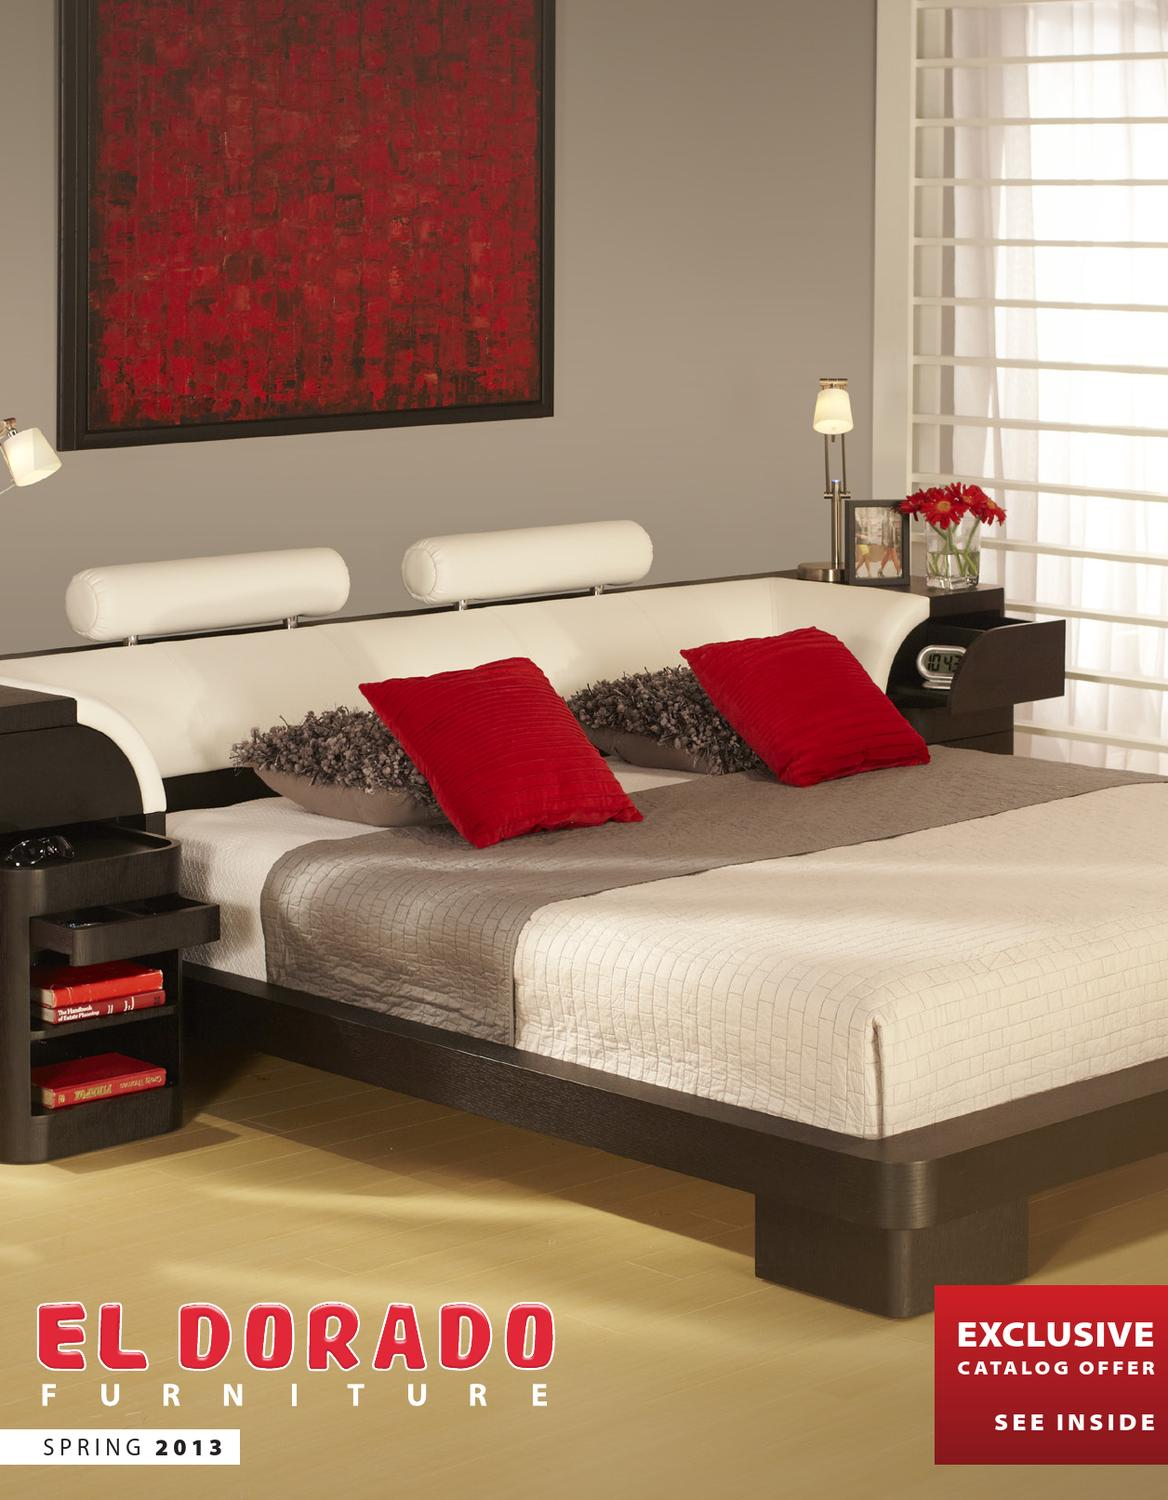 El Dorado Furniture Bedroom Set Design A1houston Com El Dorado Furniture  Catalog Spring 2013 Issueel Dorado